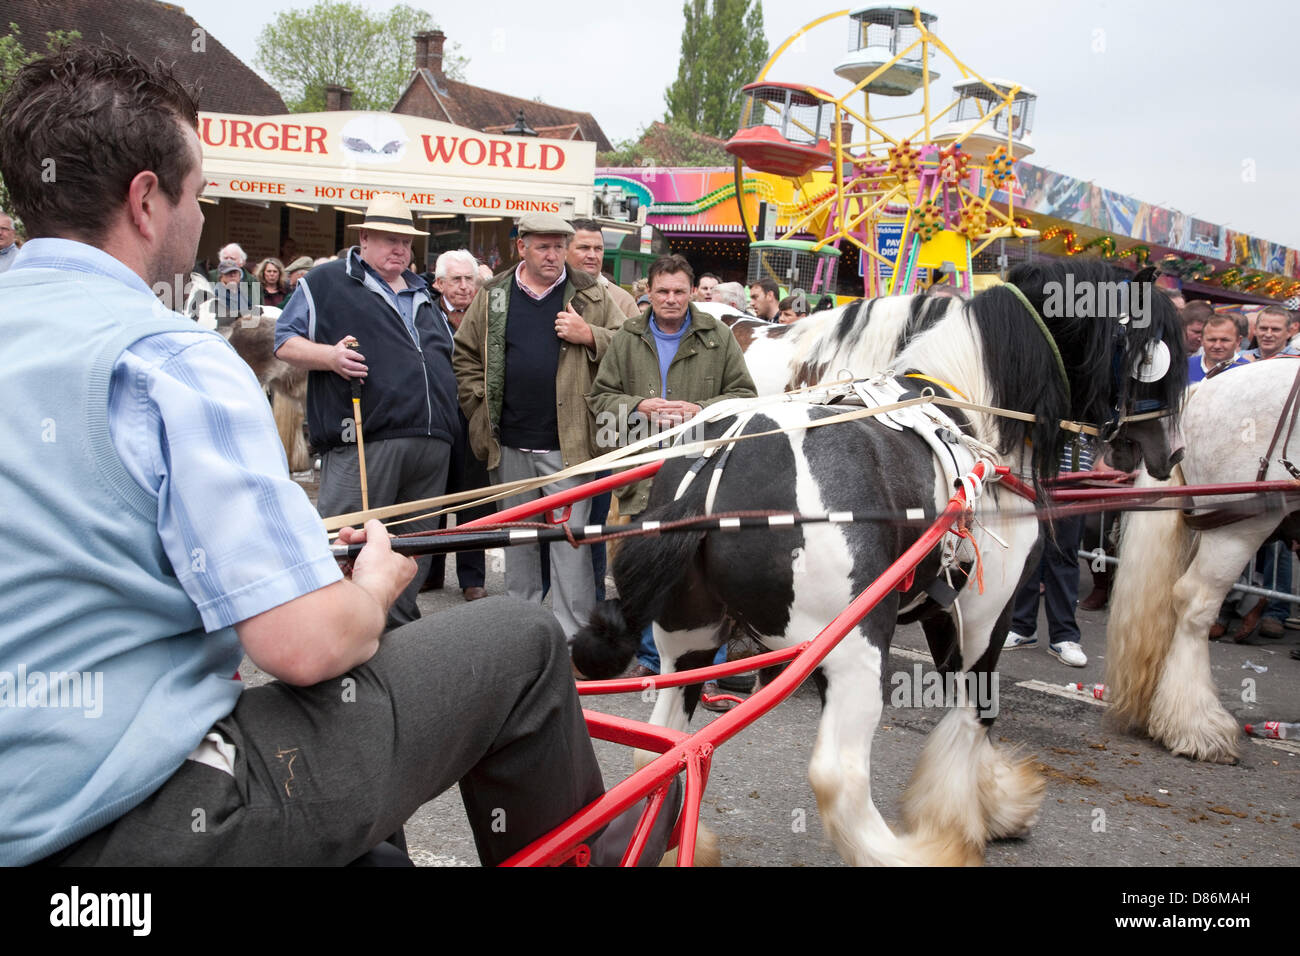 Wickham, Hampshire, UK, 20th May 2013. The historic Wickham Horse Fair takes place in the centre of the town, attacting Stock Photo